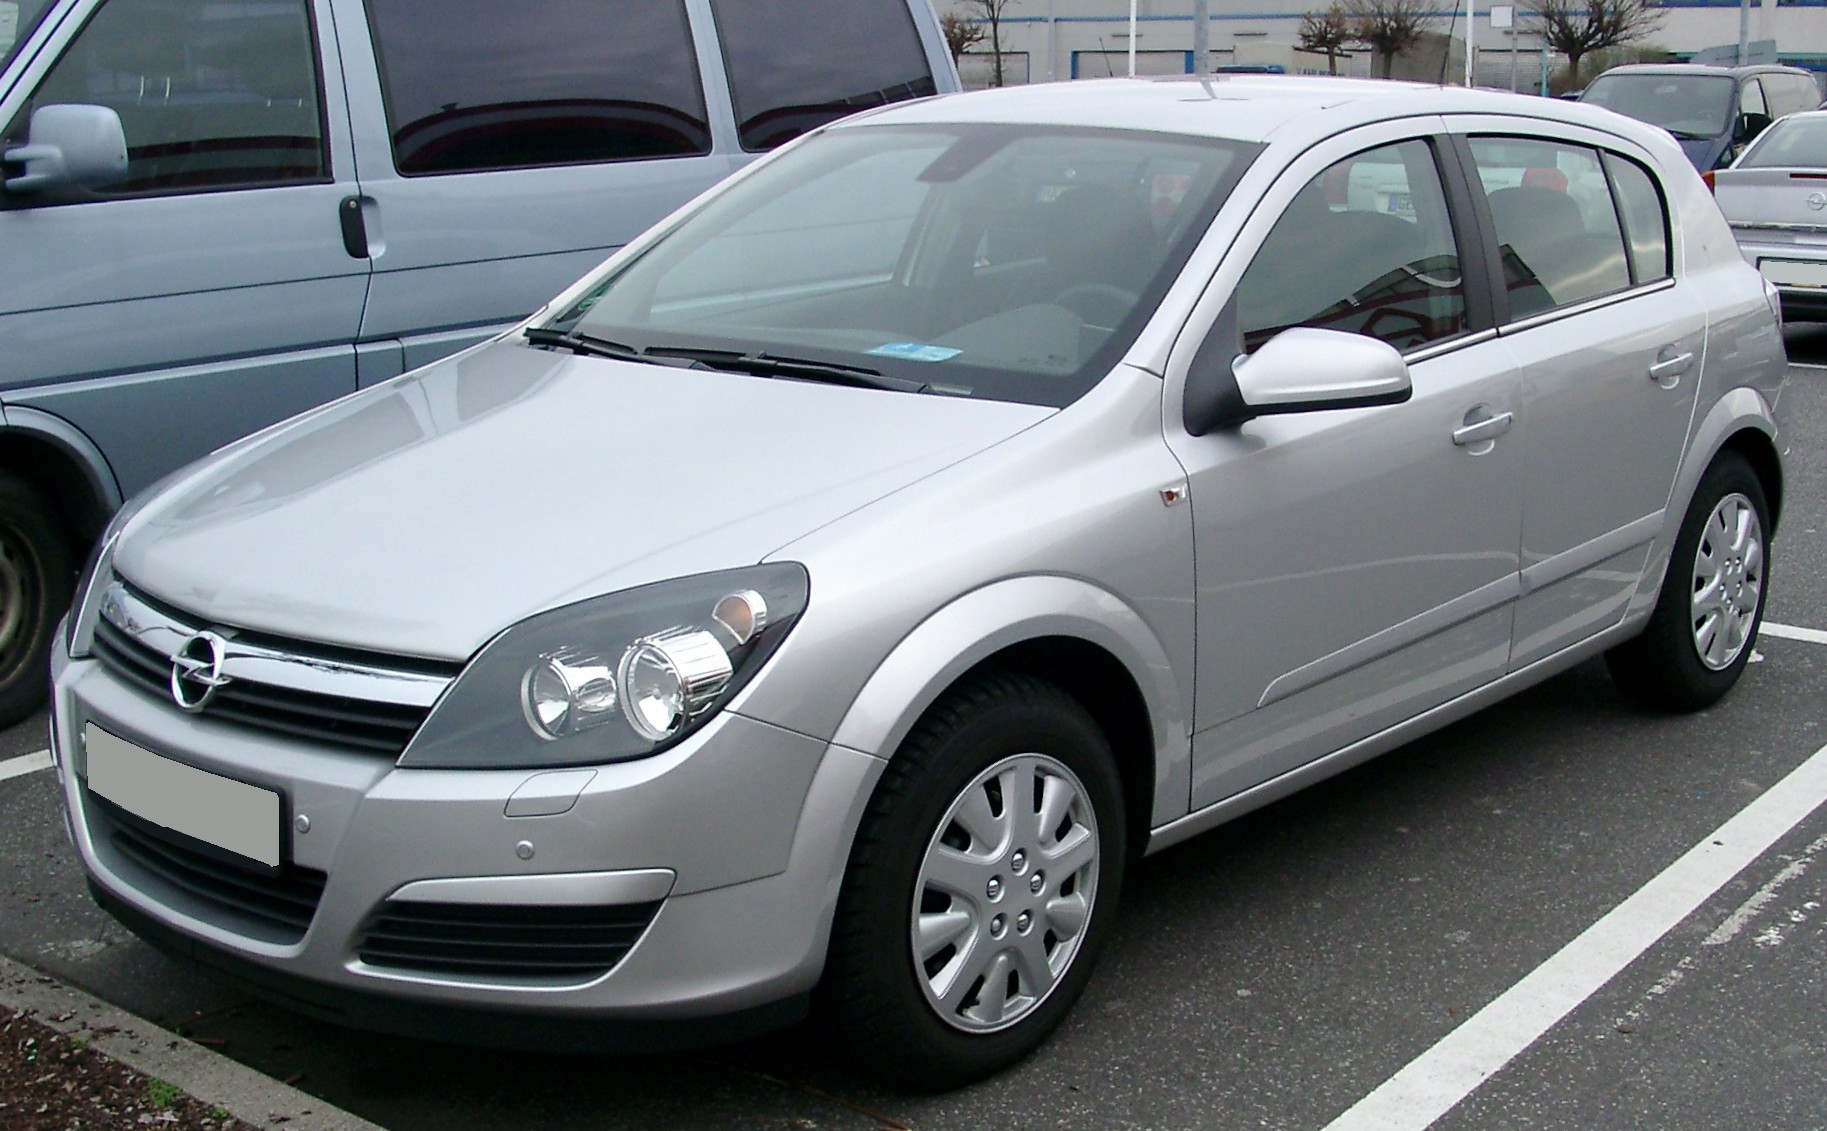 Opel_Astra_front_20080306